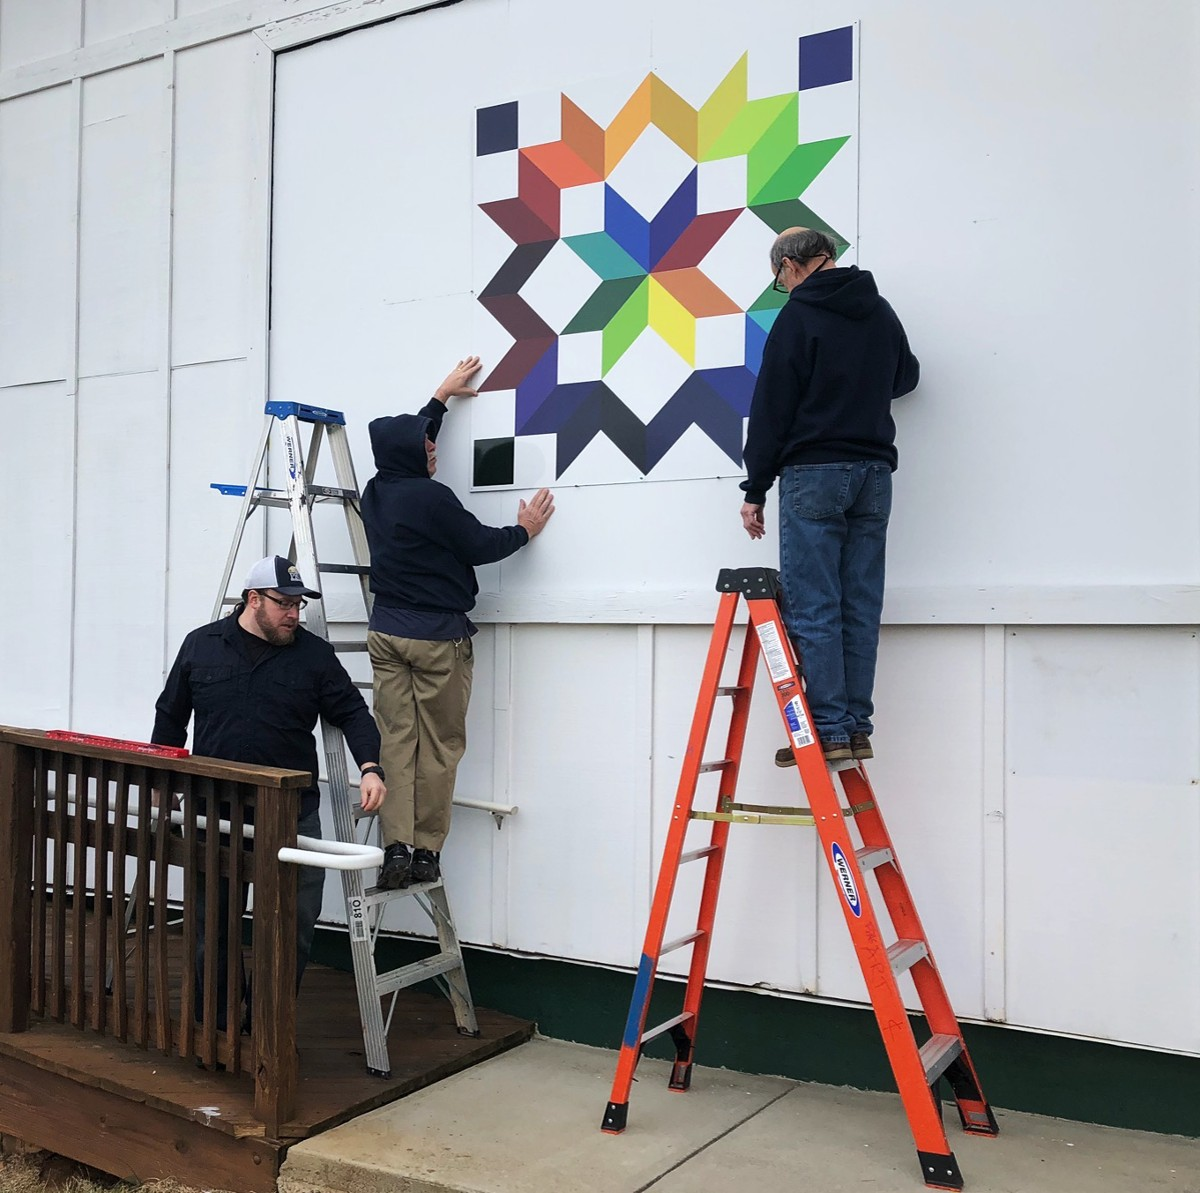 Parks & Rec Staff installing the Carpenter's Wheel Quilt Square at Franklin Park Arts Center in Purcellville.